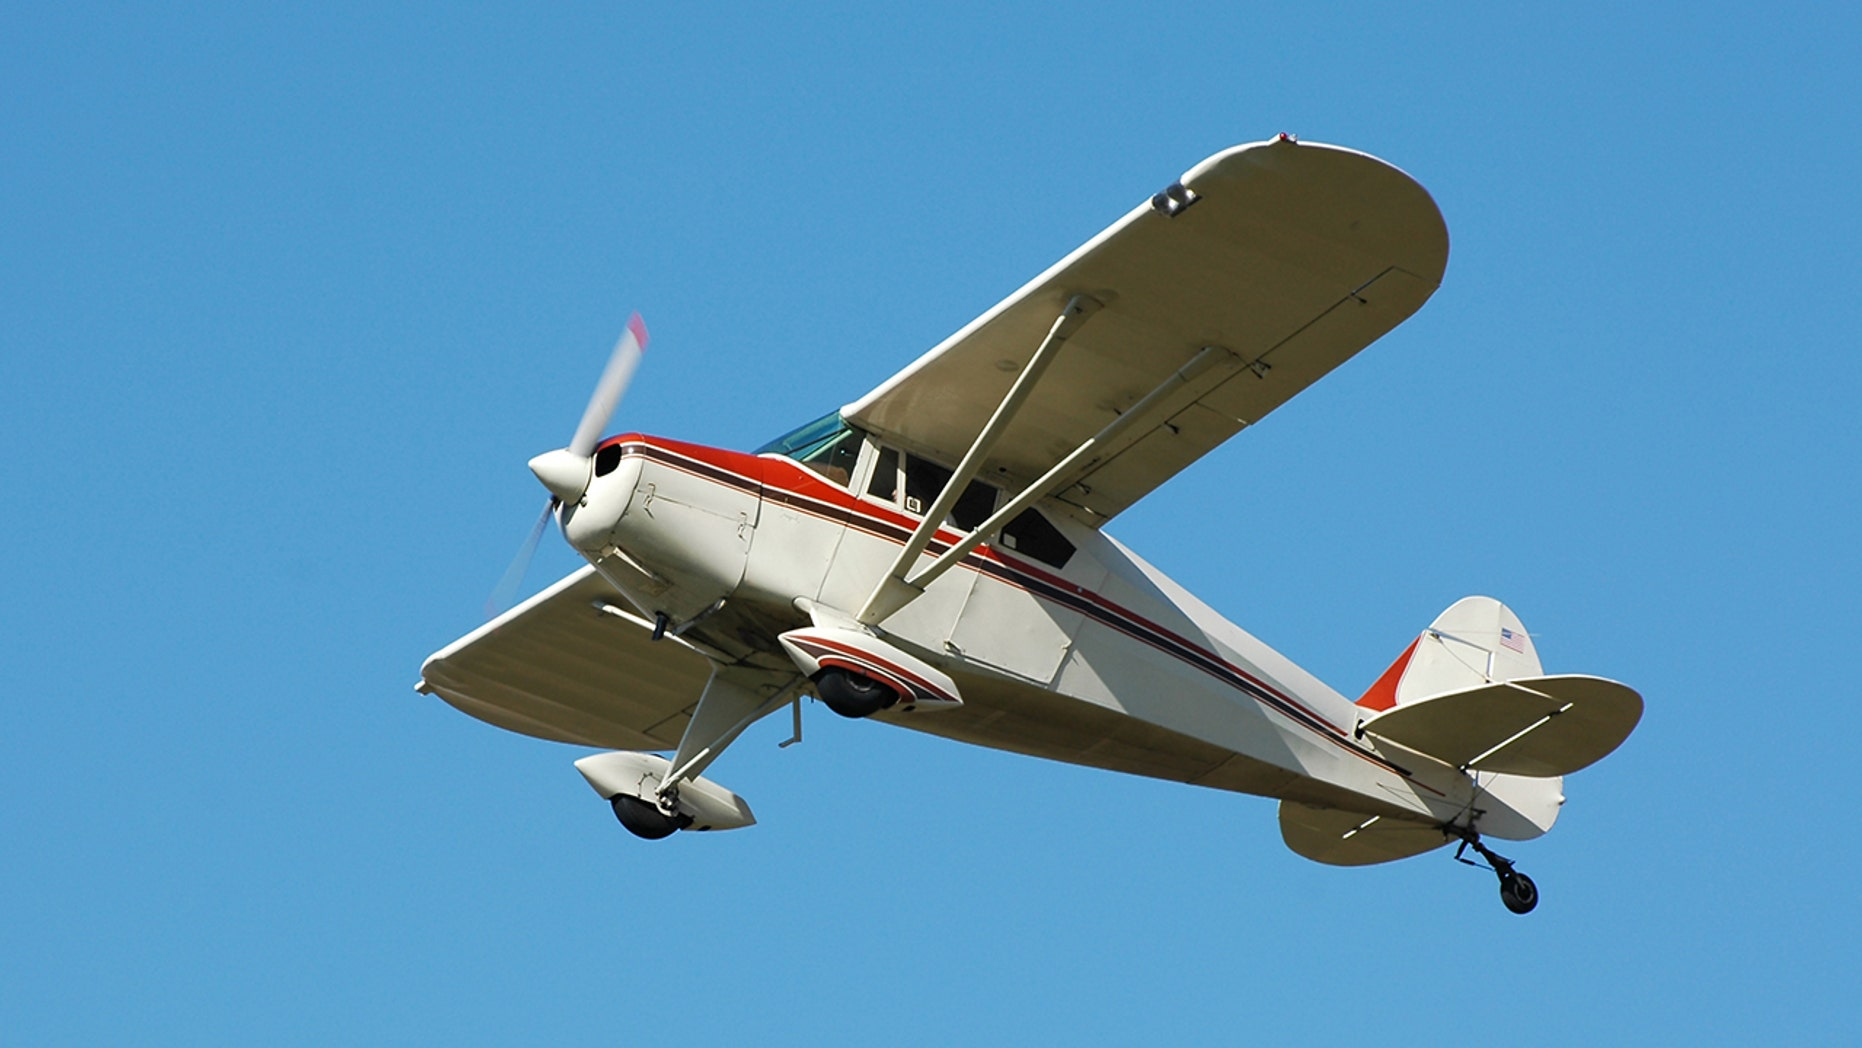 Small planes (comparable to the one pictured here) were flipped over and damaged in the thunderstorm winds that swept Grand Prairie, Texas, early Wednesday morning.